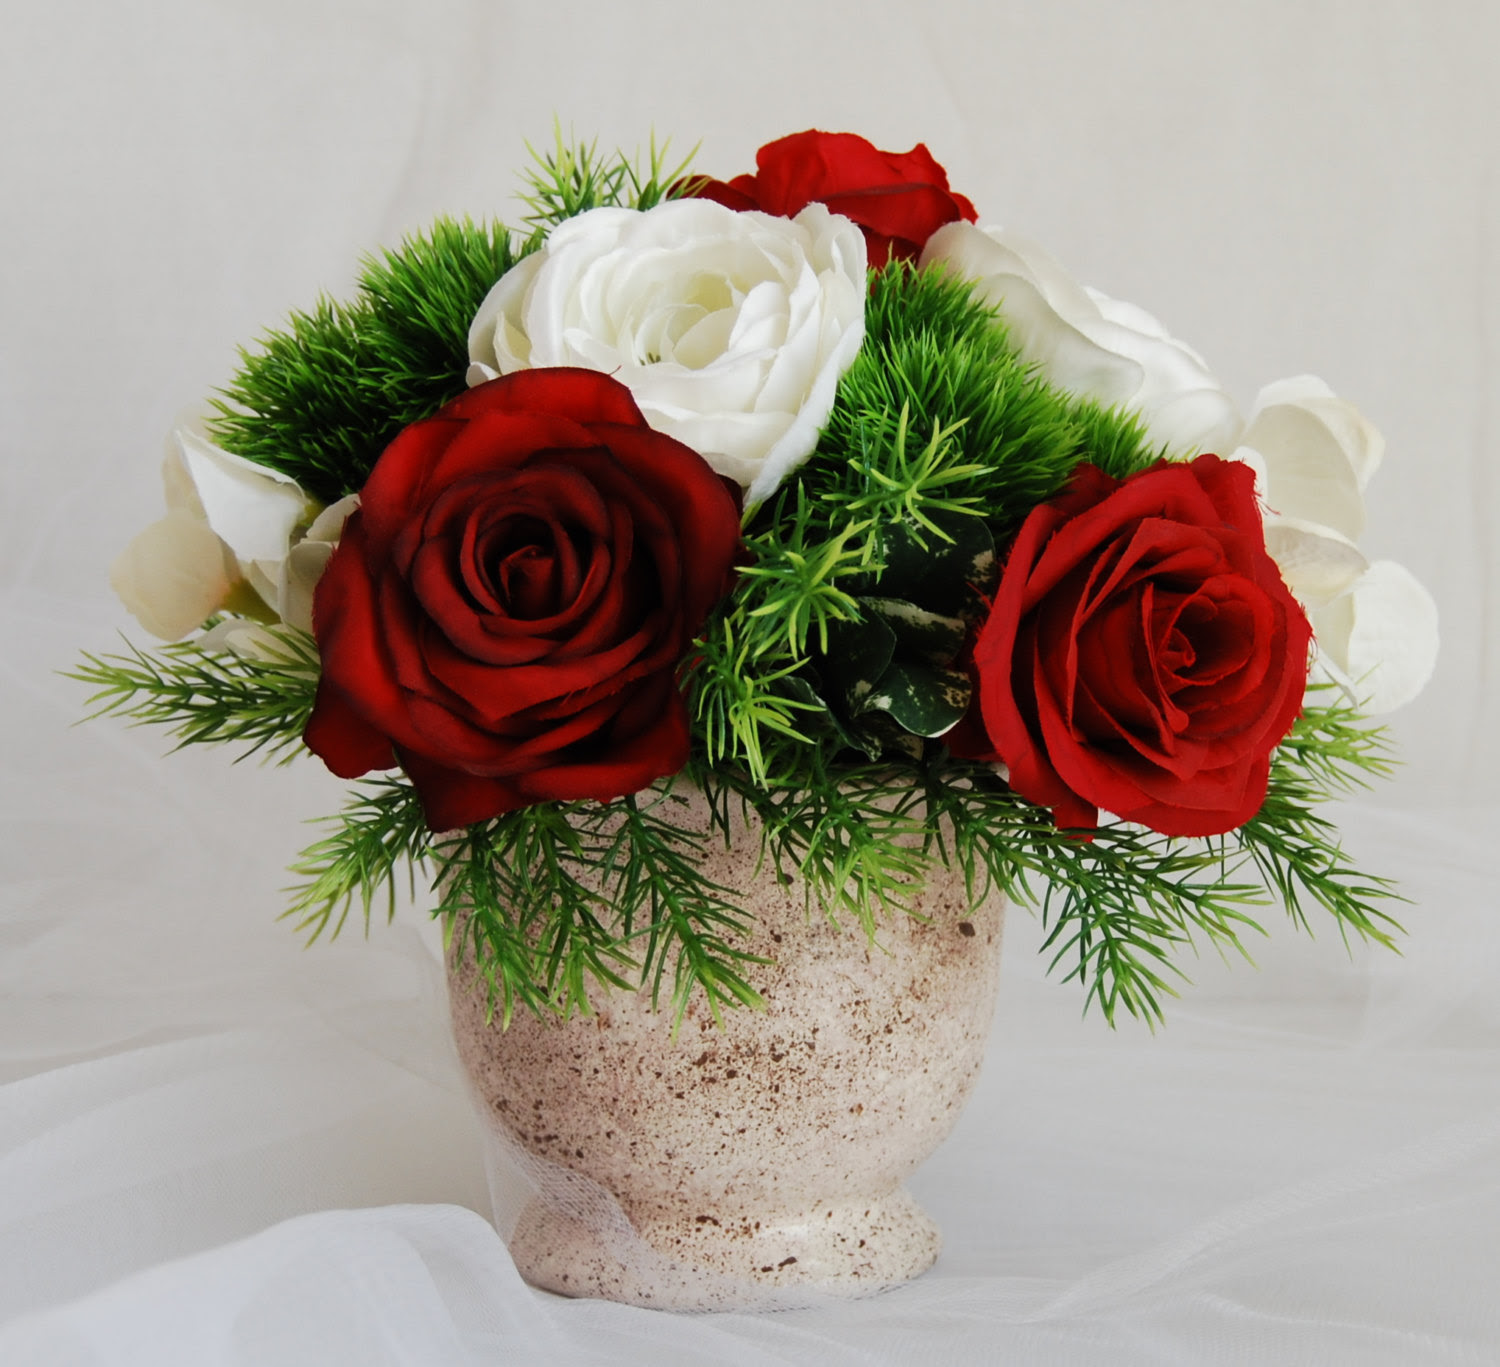 Silk Floral Arrangement Faux Red Roses Artificial White Hydrangeas Faux Flower Arrangement Home Decor Flower Modern Floral Arrangements Floral Designs By Alka